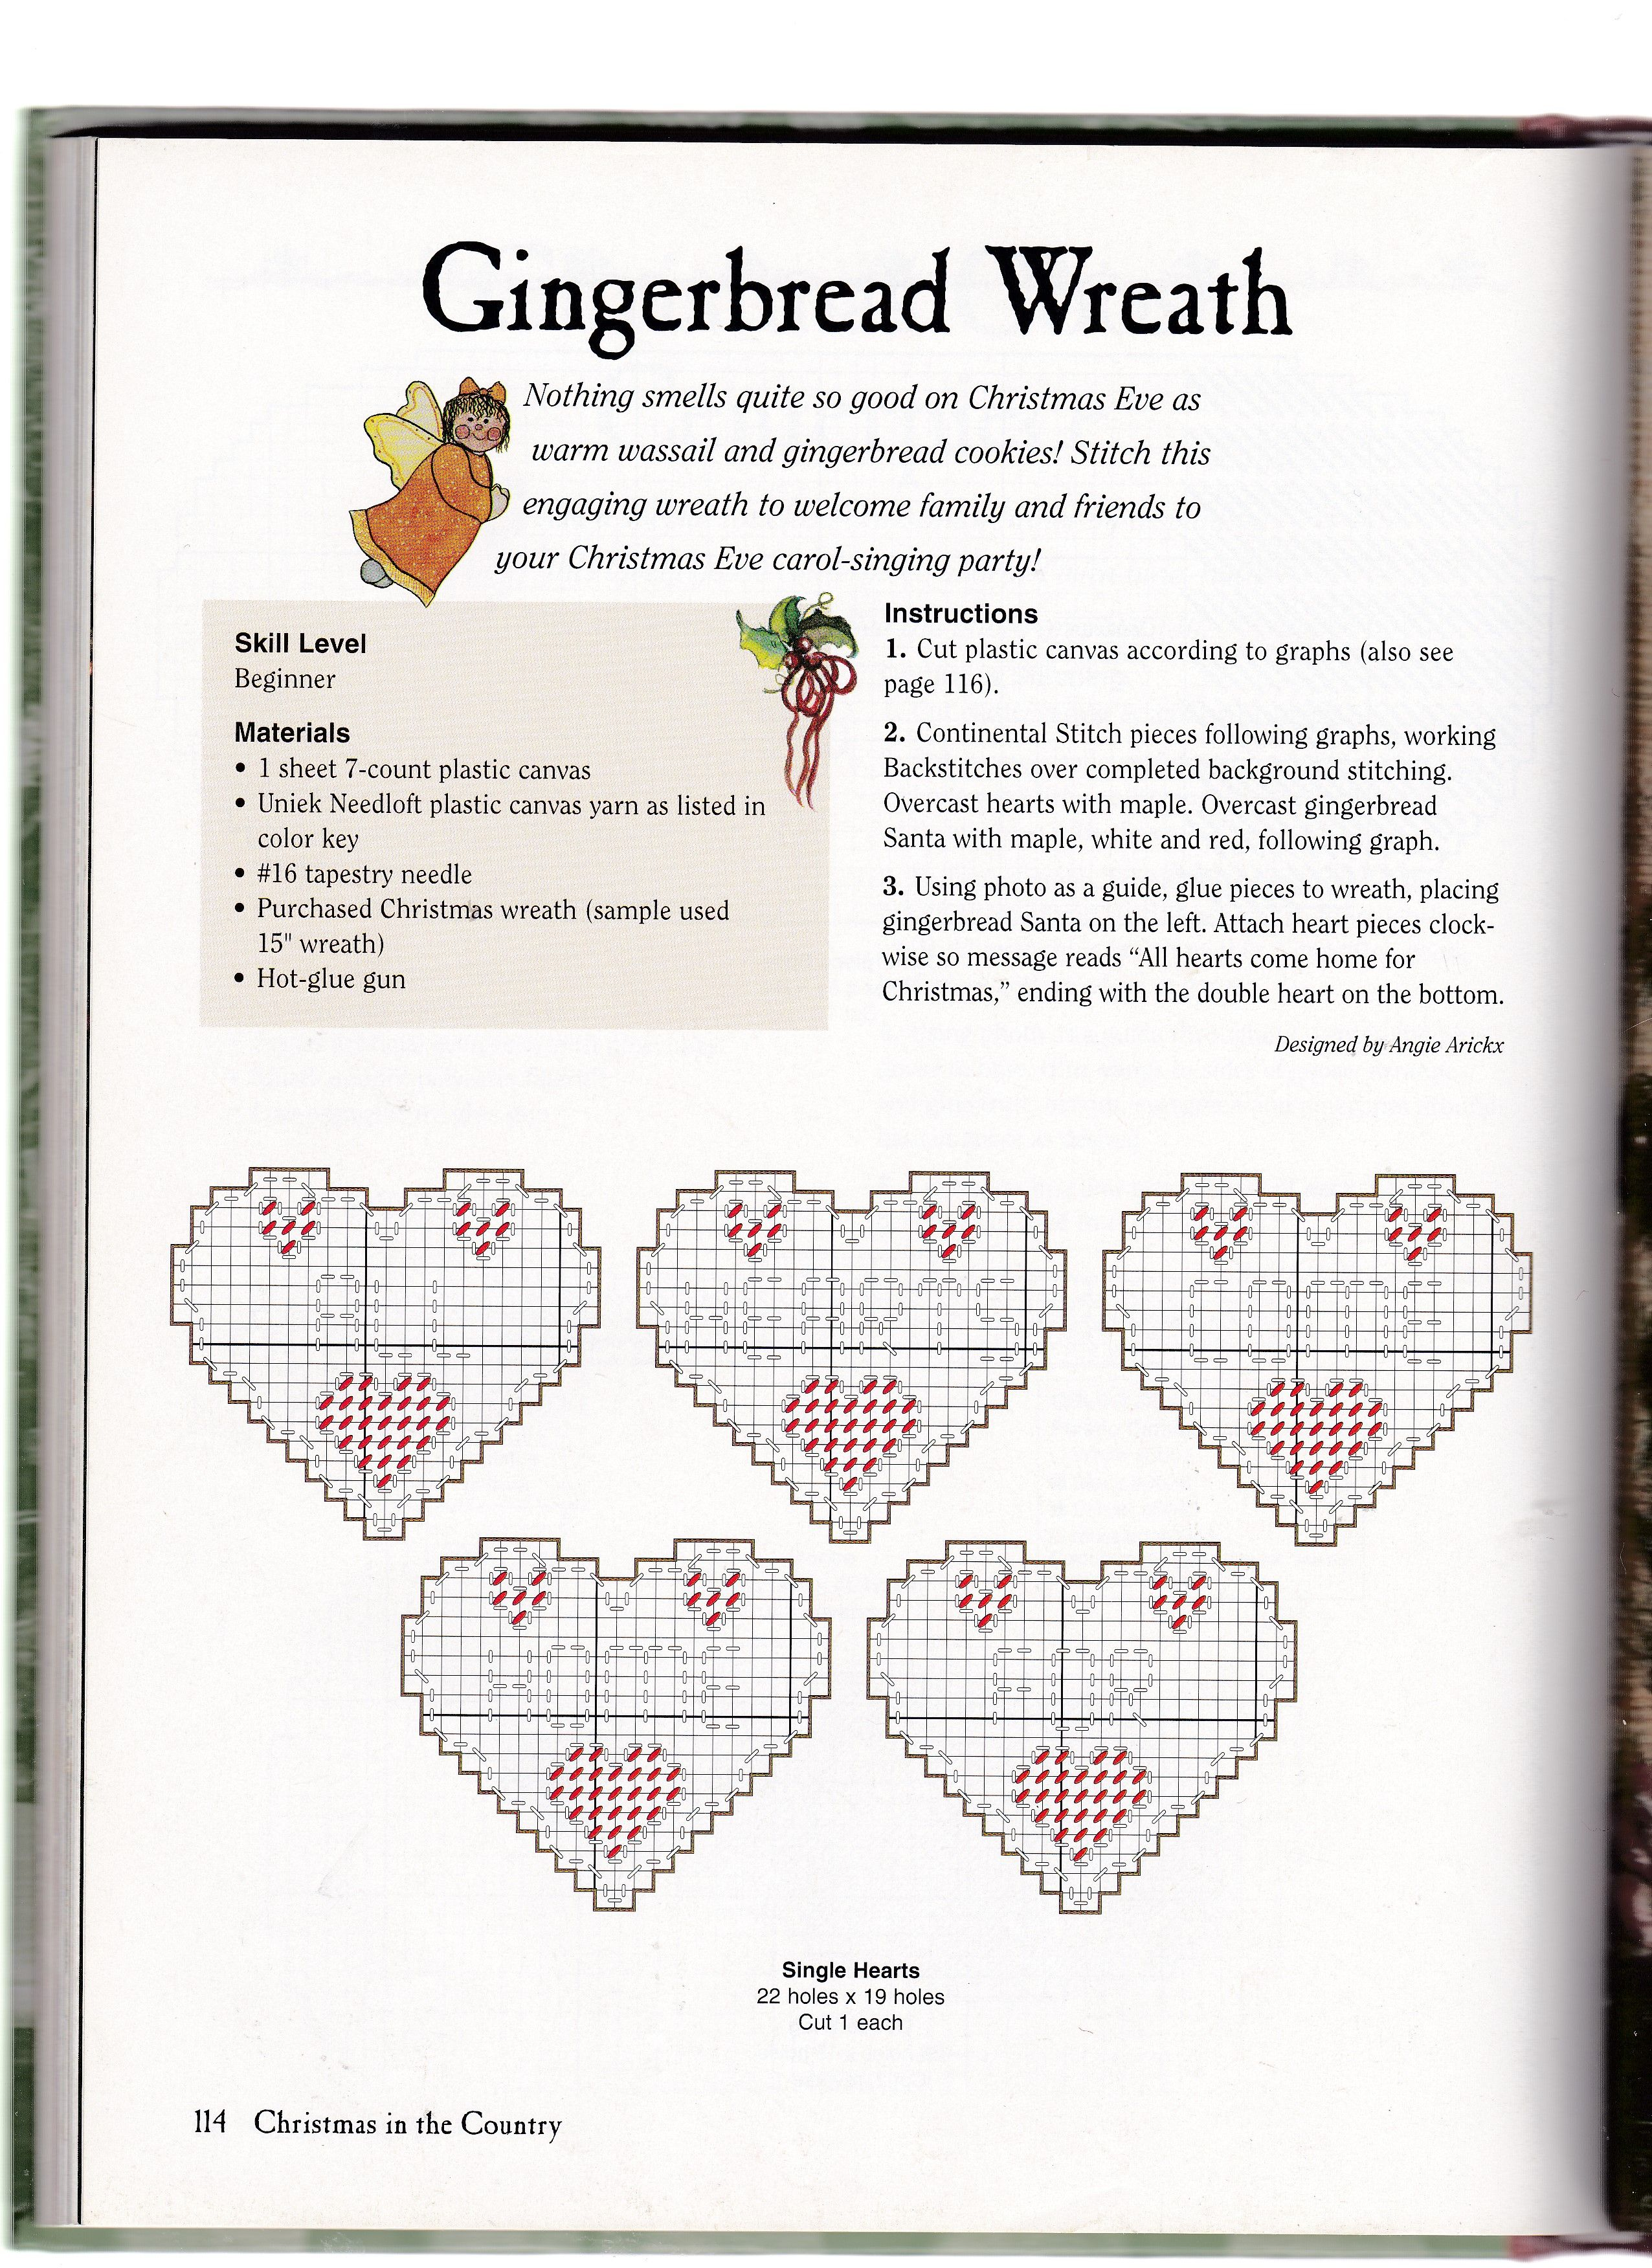 GINGERBREAD WREATH by ANGIE ARICKX 2/3